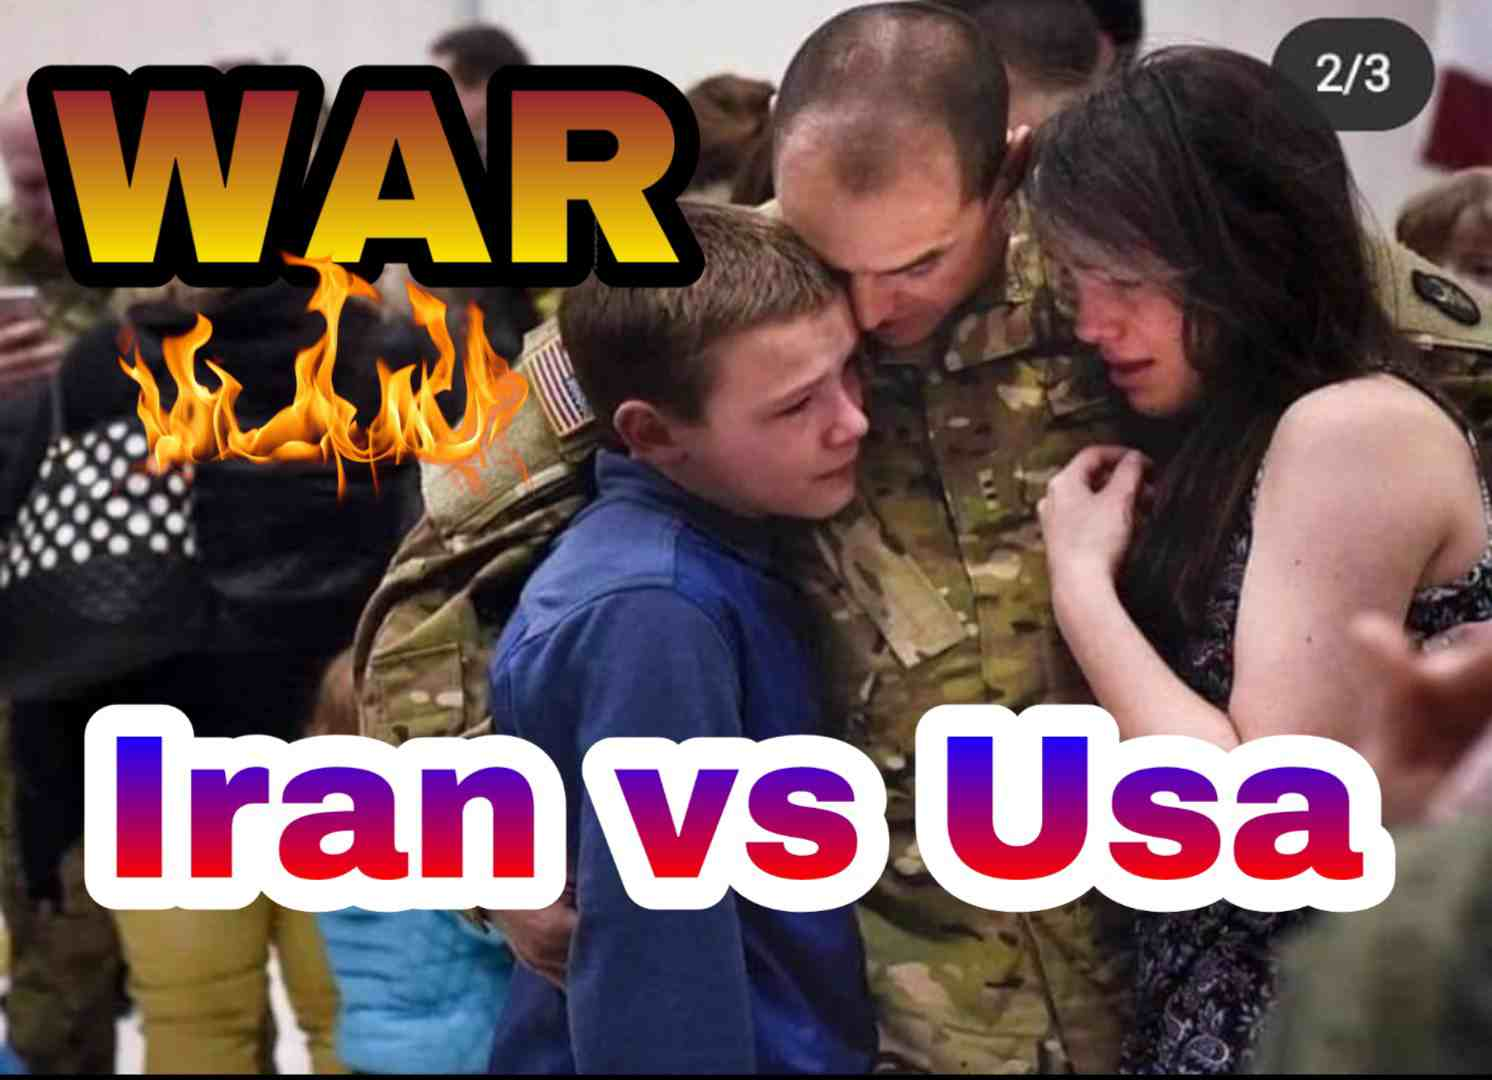 Iran attack on usa, iran vs usa, iran vs usa fight